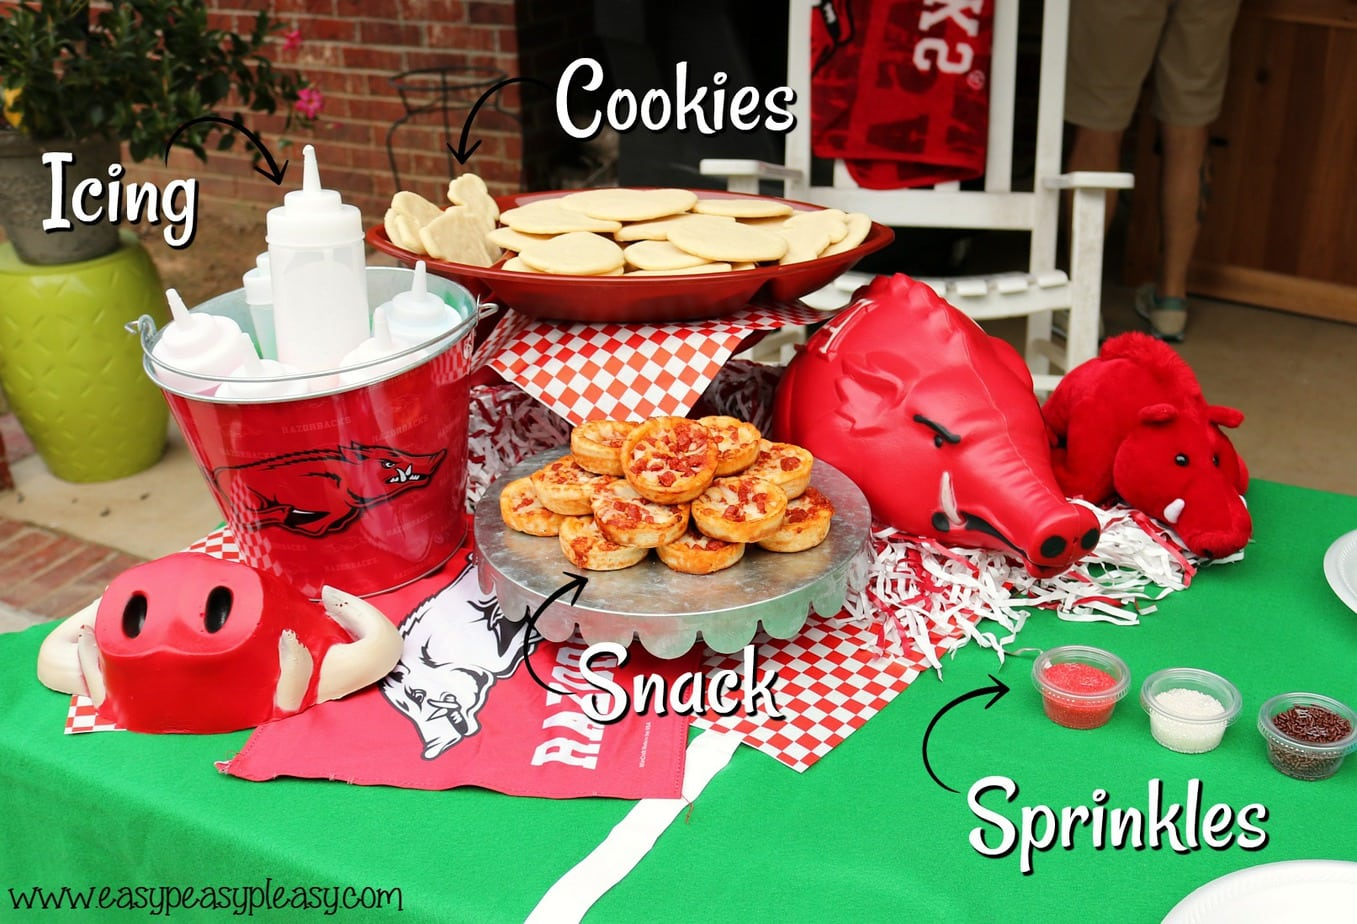 Cookie decorating station and snack for kids so you can watch the big game.